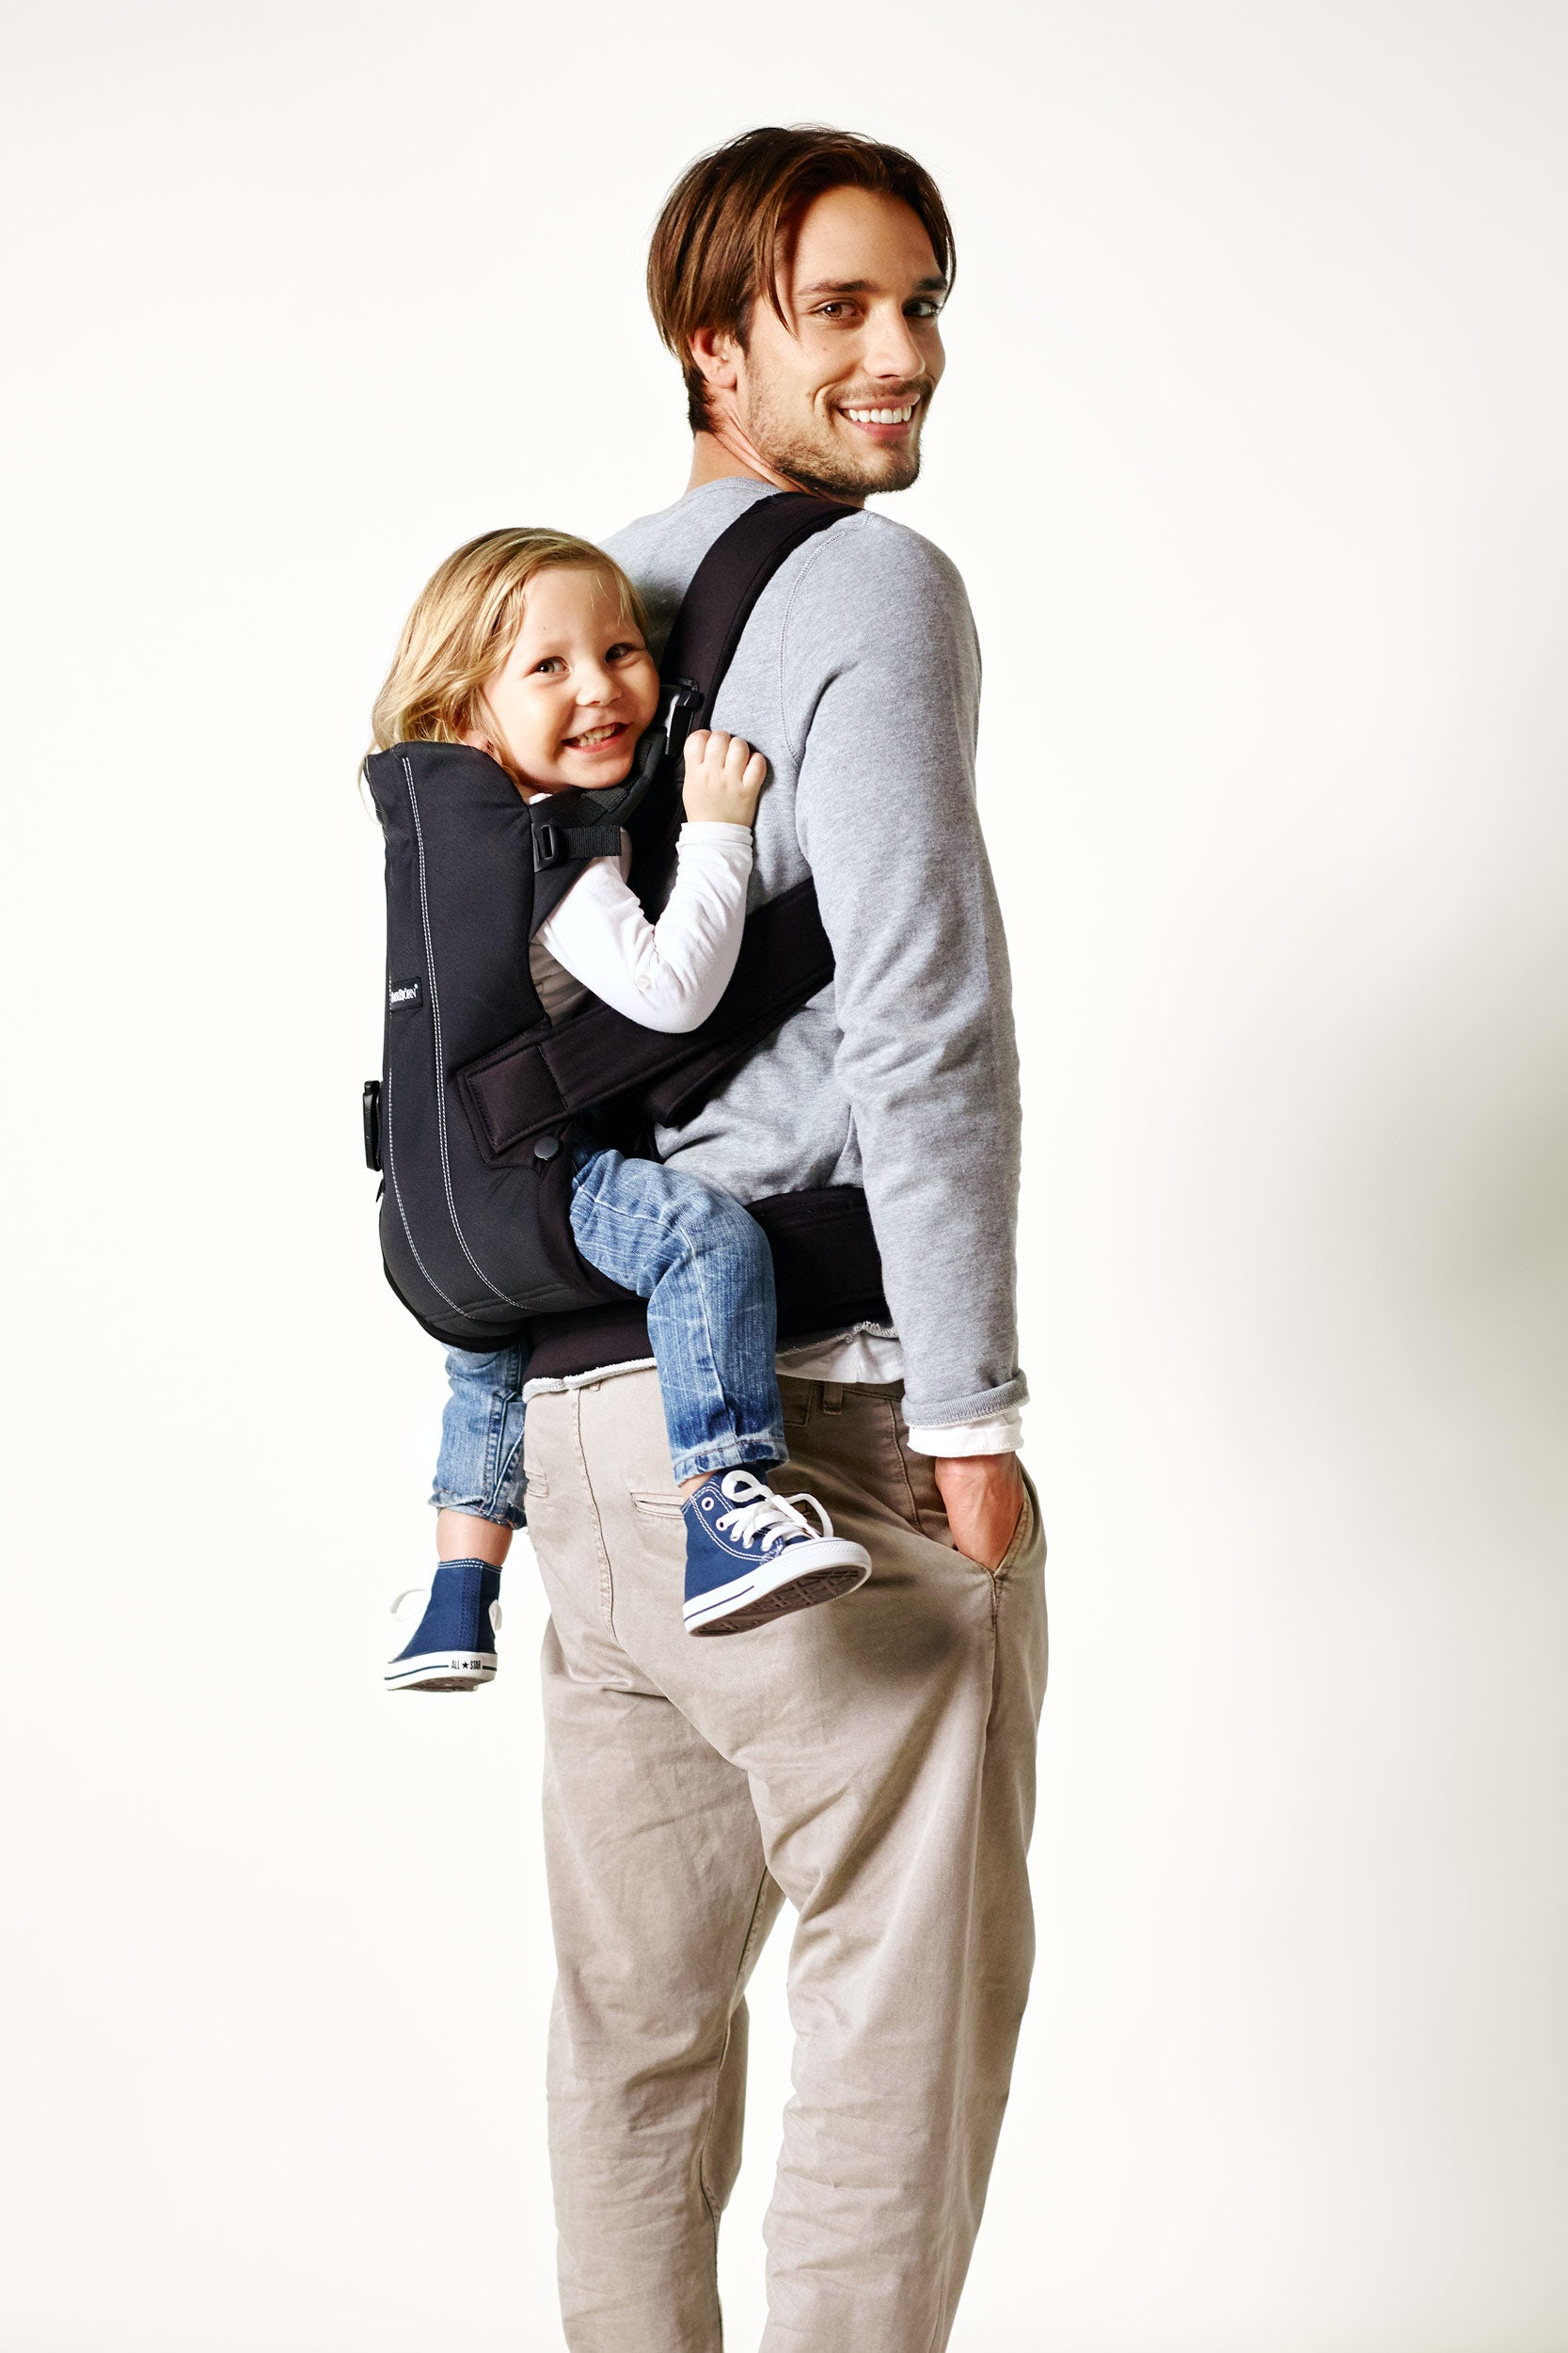 Baby Carrier We